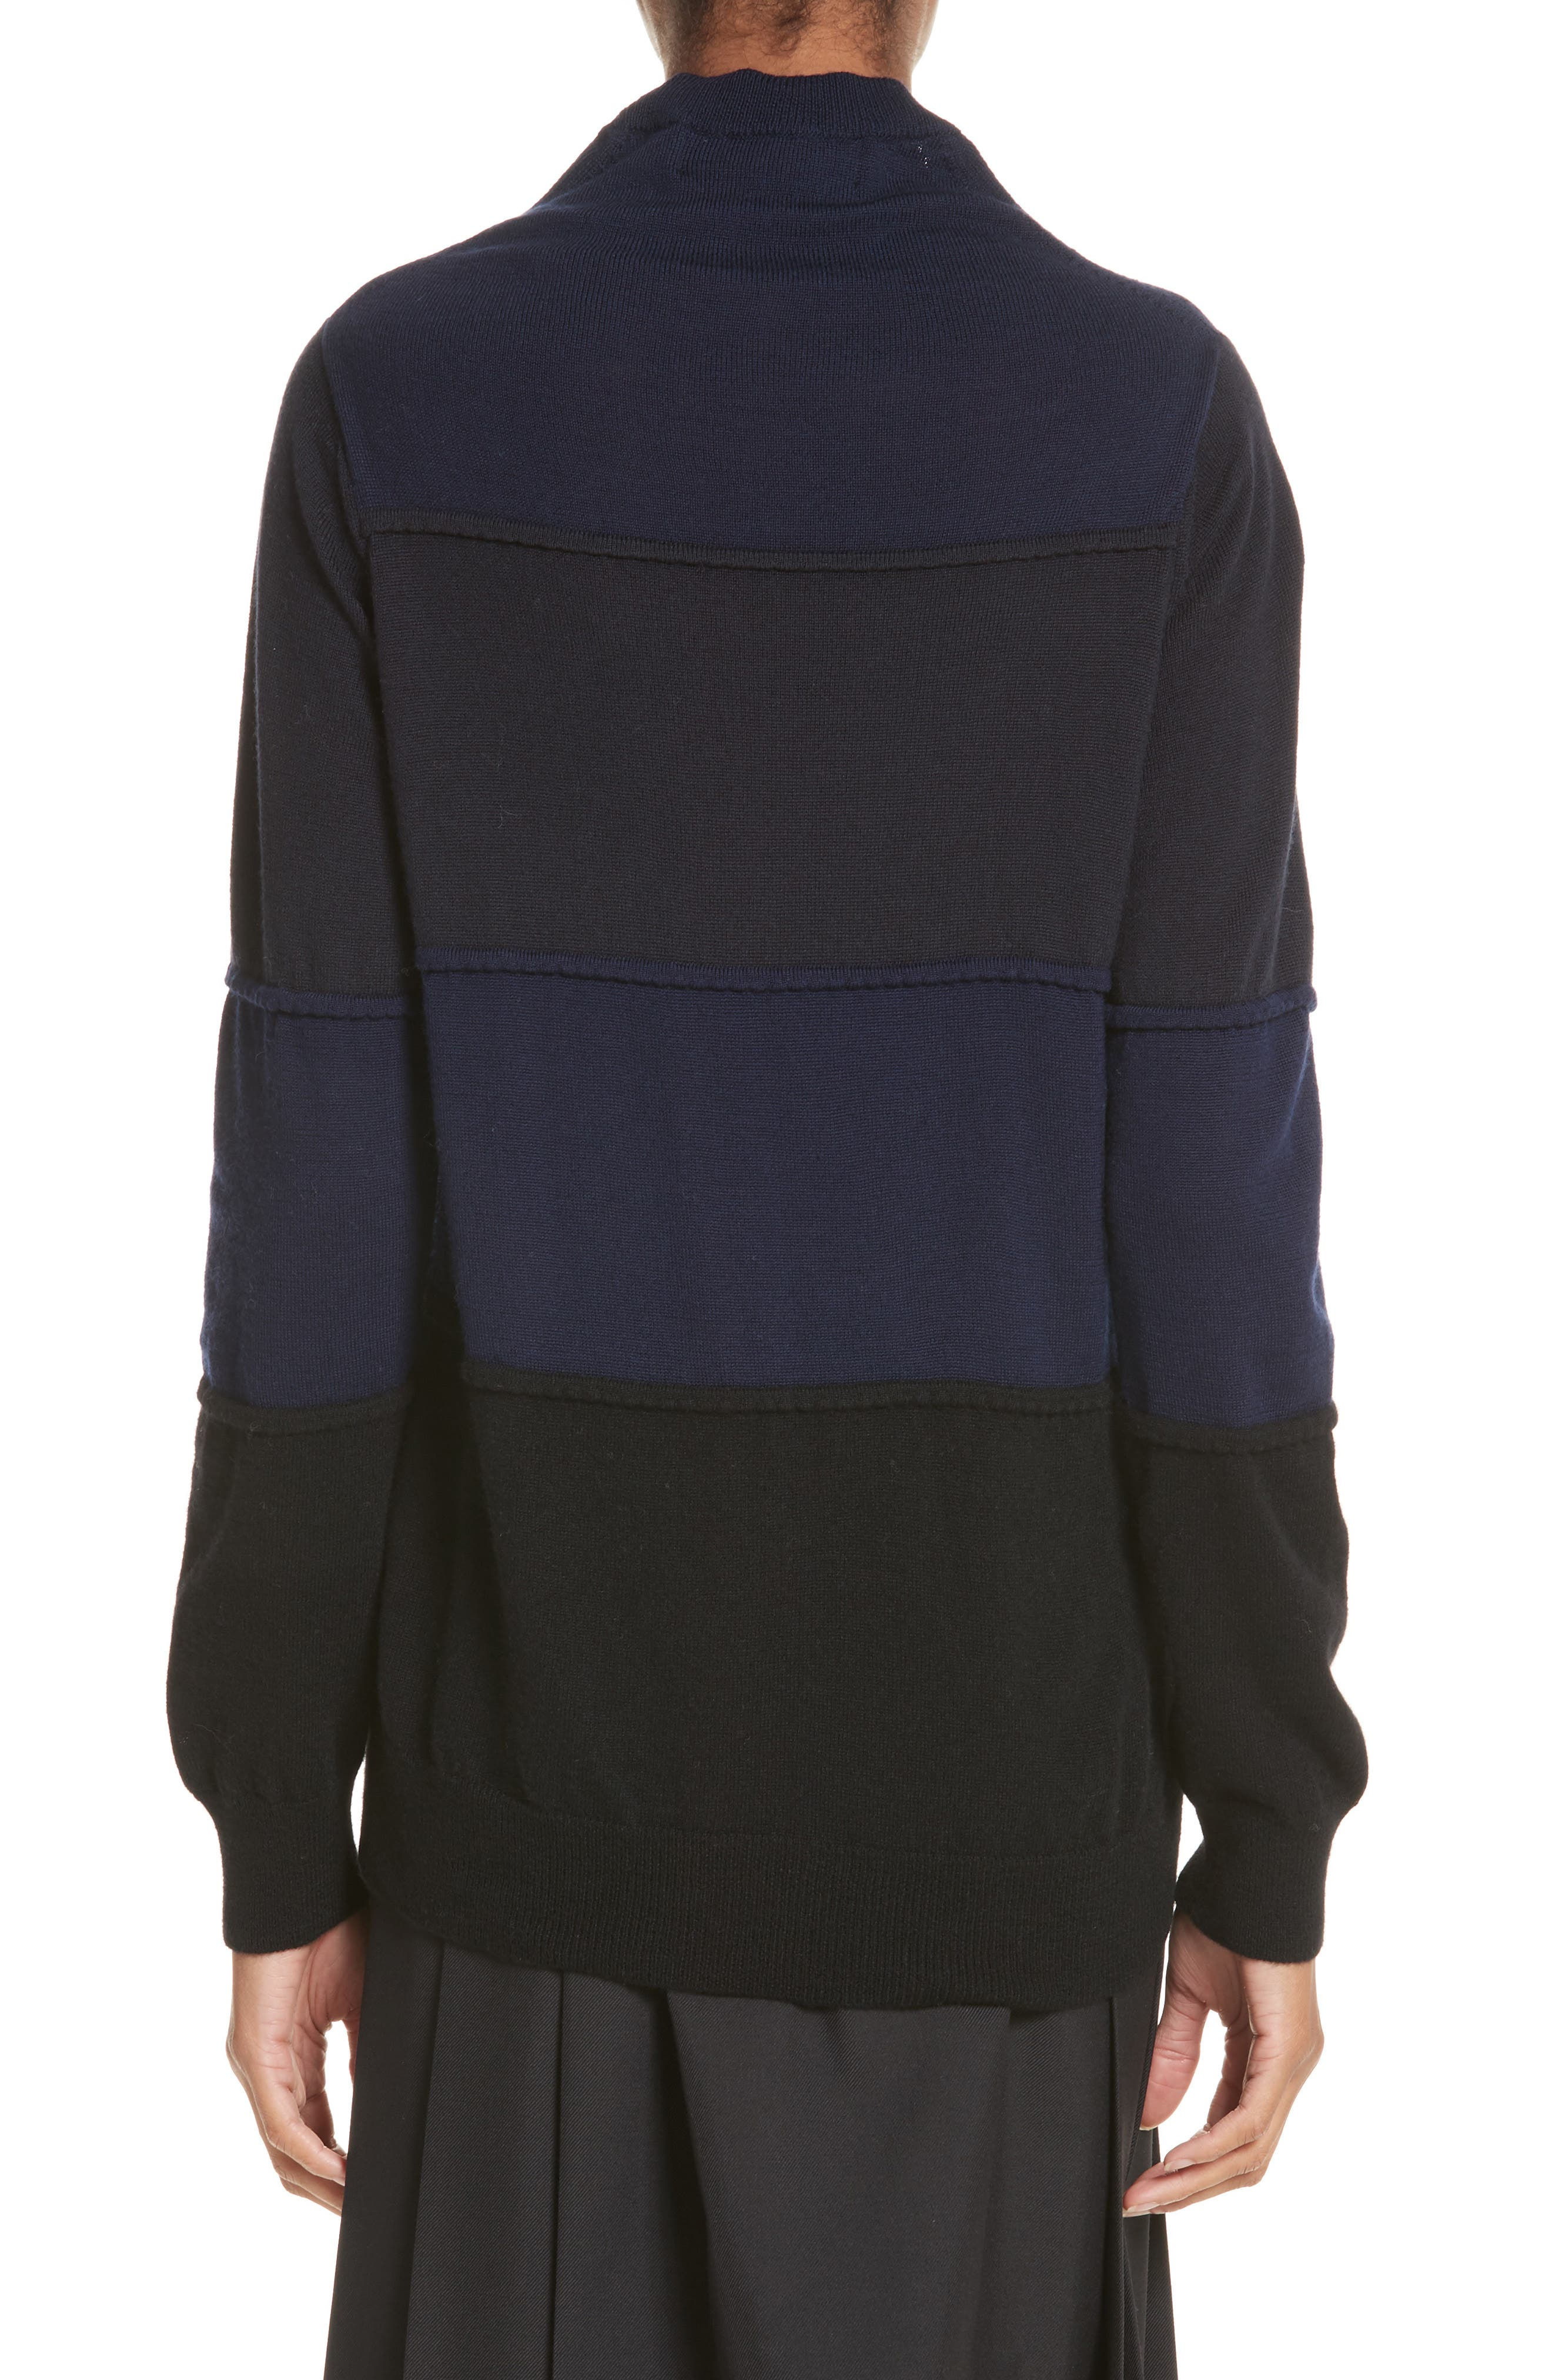 Pintuck Stripe Sweater,                             Alternate thumbnail 2, color,                             Navy